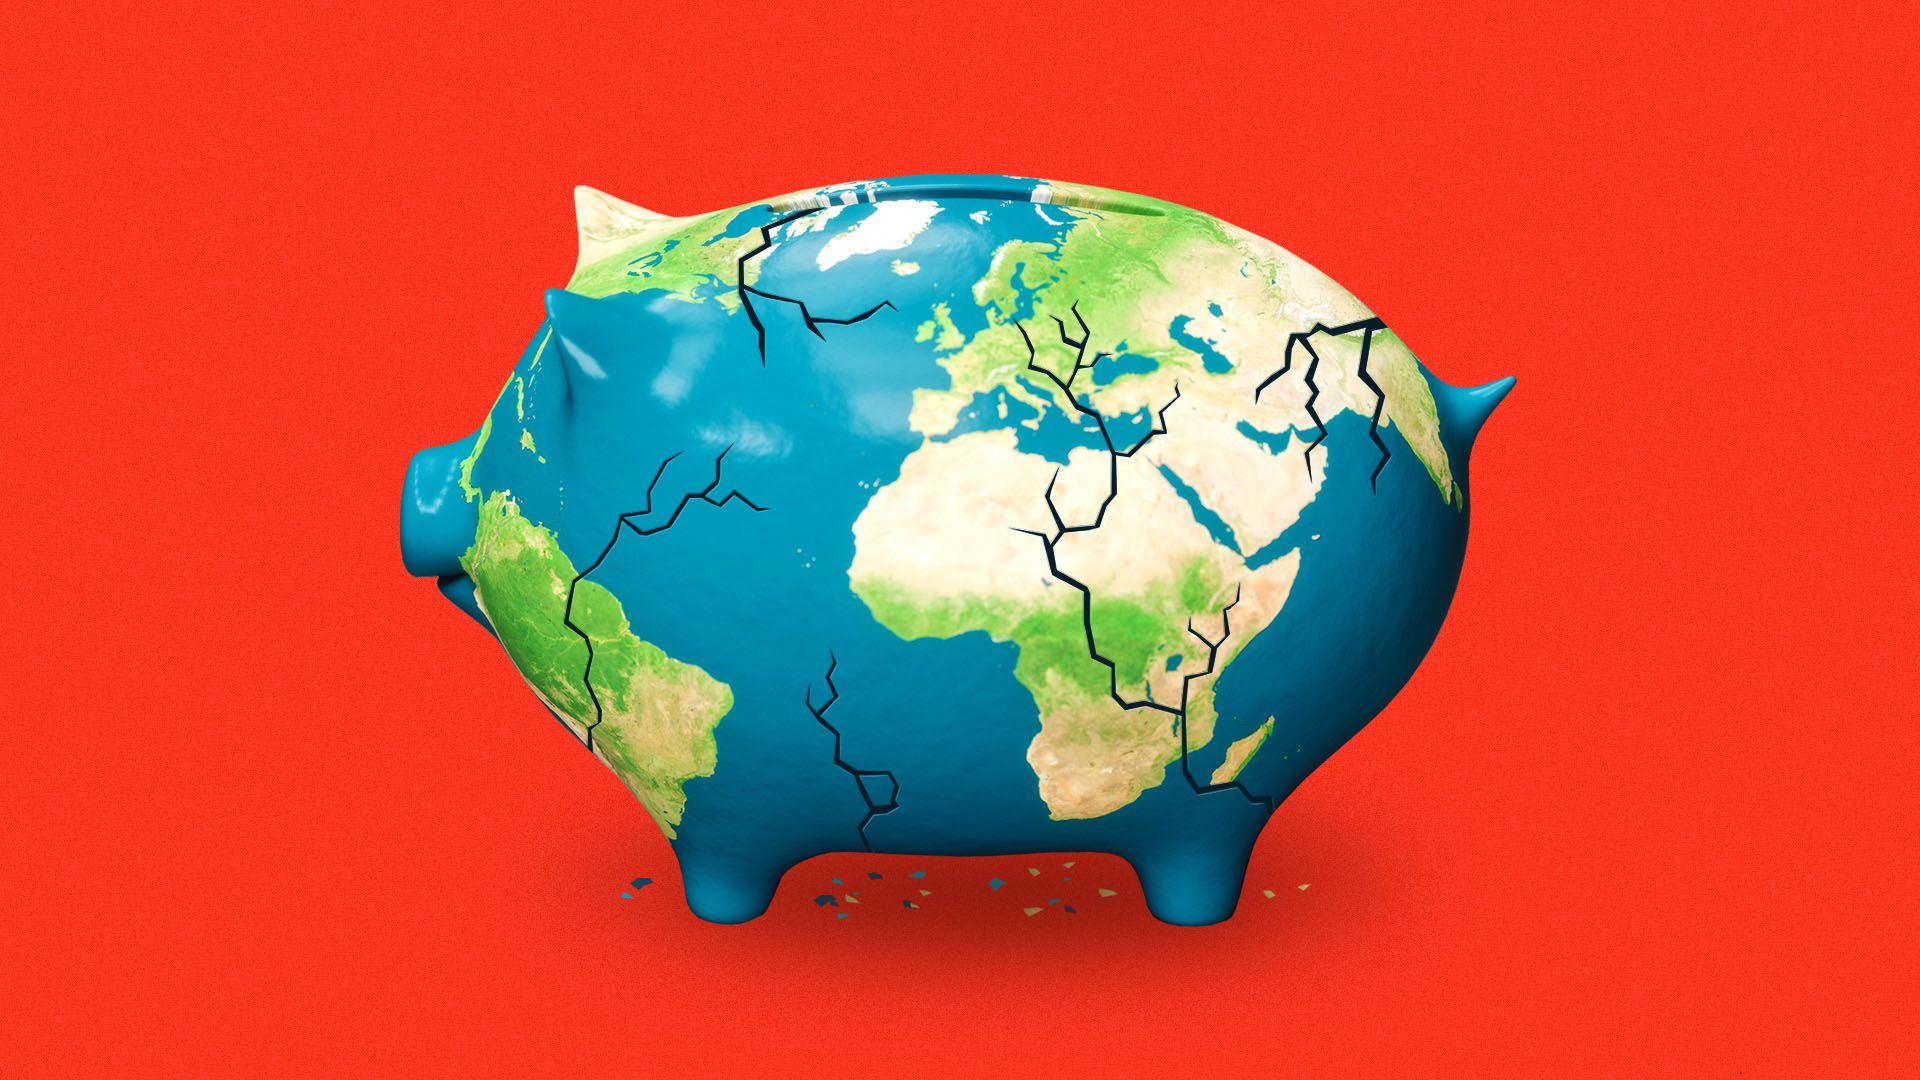 Illustration of a cracked piggy bank shaped like the earth